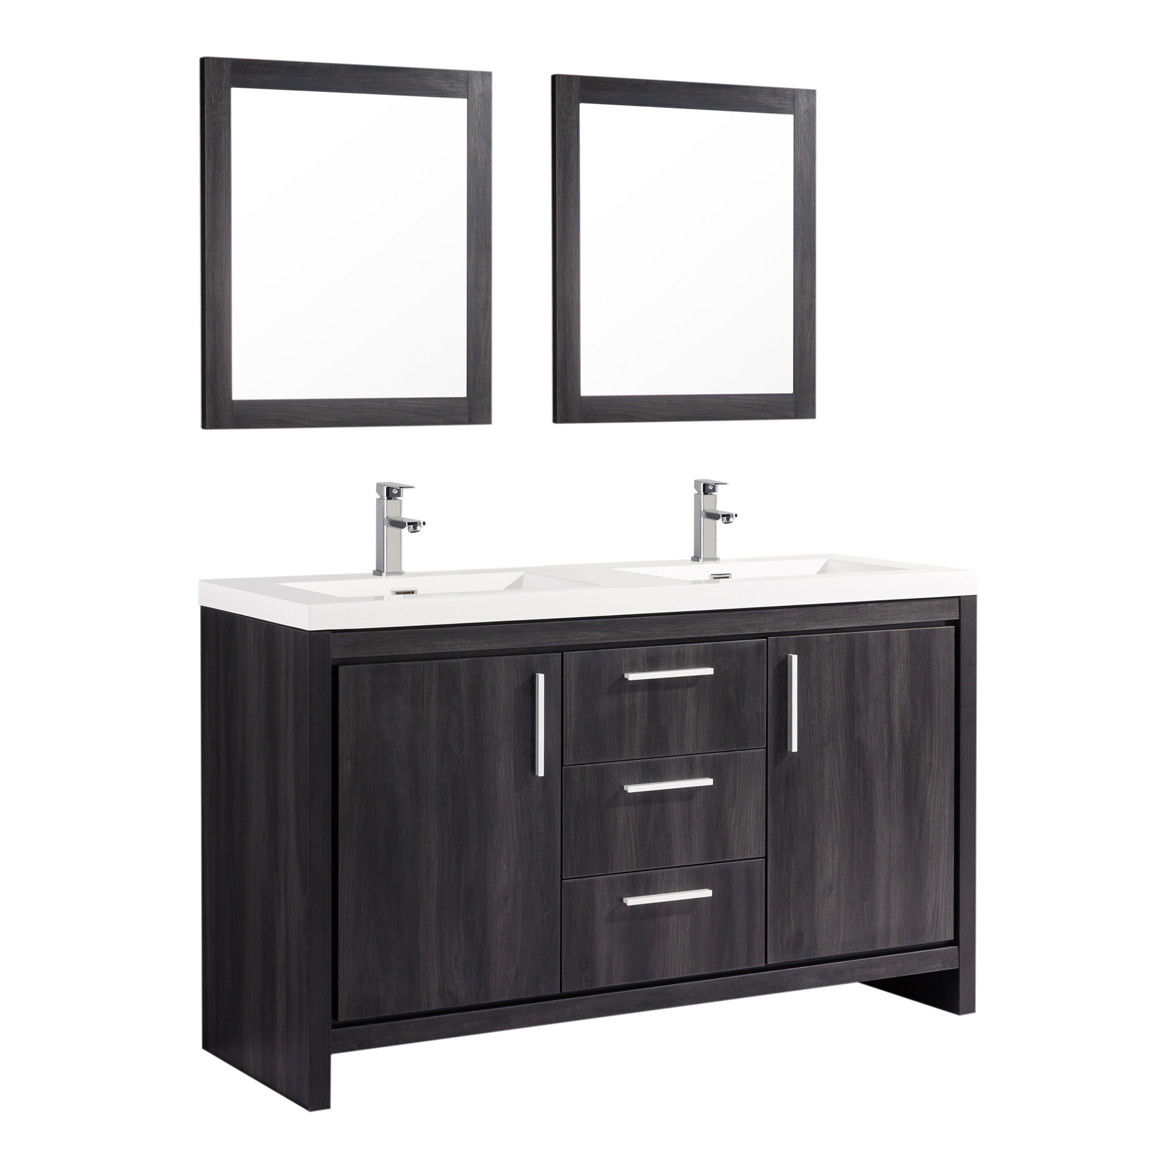 Elegant wayfair bathroom vanities online bathroom design - Wayfair furniture bathroom vanities ...